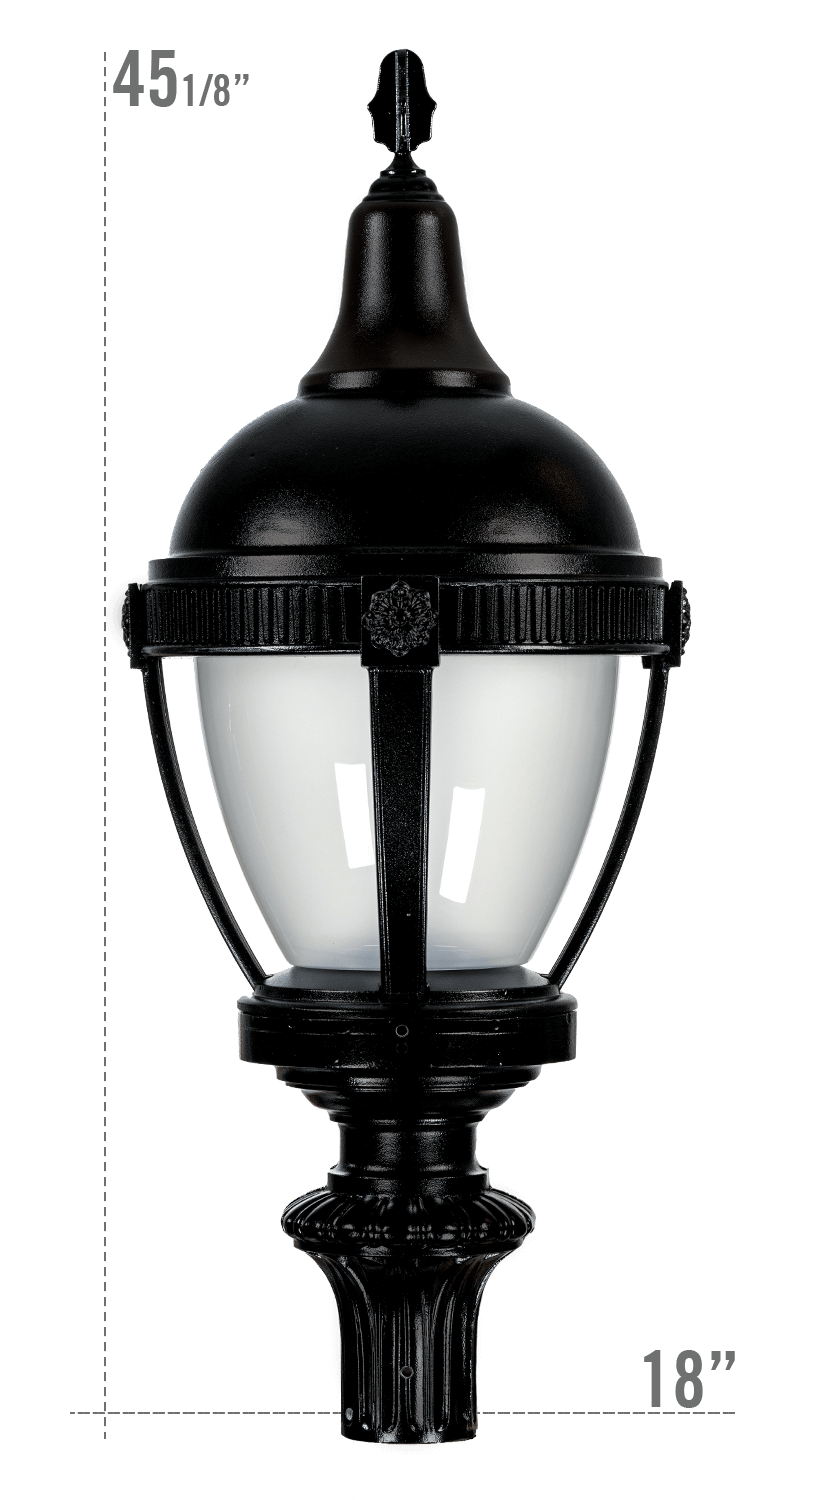 THE ROUND ROOF AUGUSTA LED LUMINAIRE WITH WASHINGTON FITTER FROSTED GLOBE